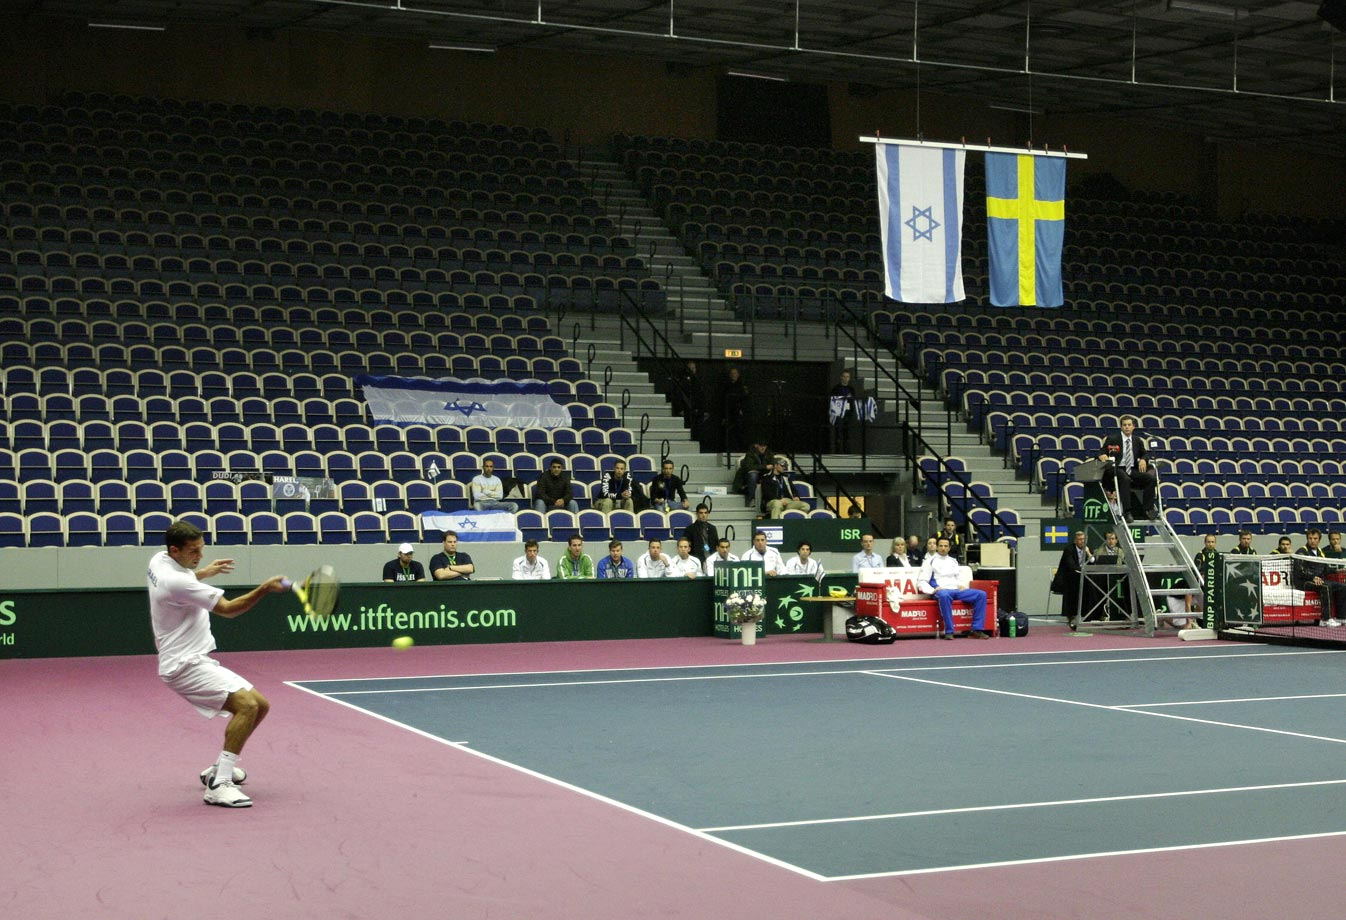 Sweden elected to host Israel in 2009 without any fans present, citing a fear of protests over Israel's bloody December offensive in Gaza. The Swedes were fined for that decision. They also wound up losing 3-2.